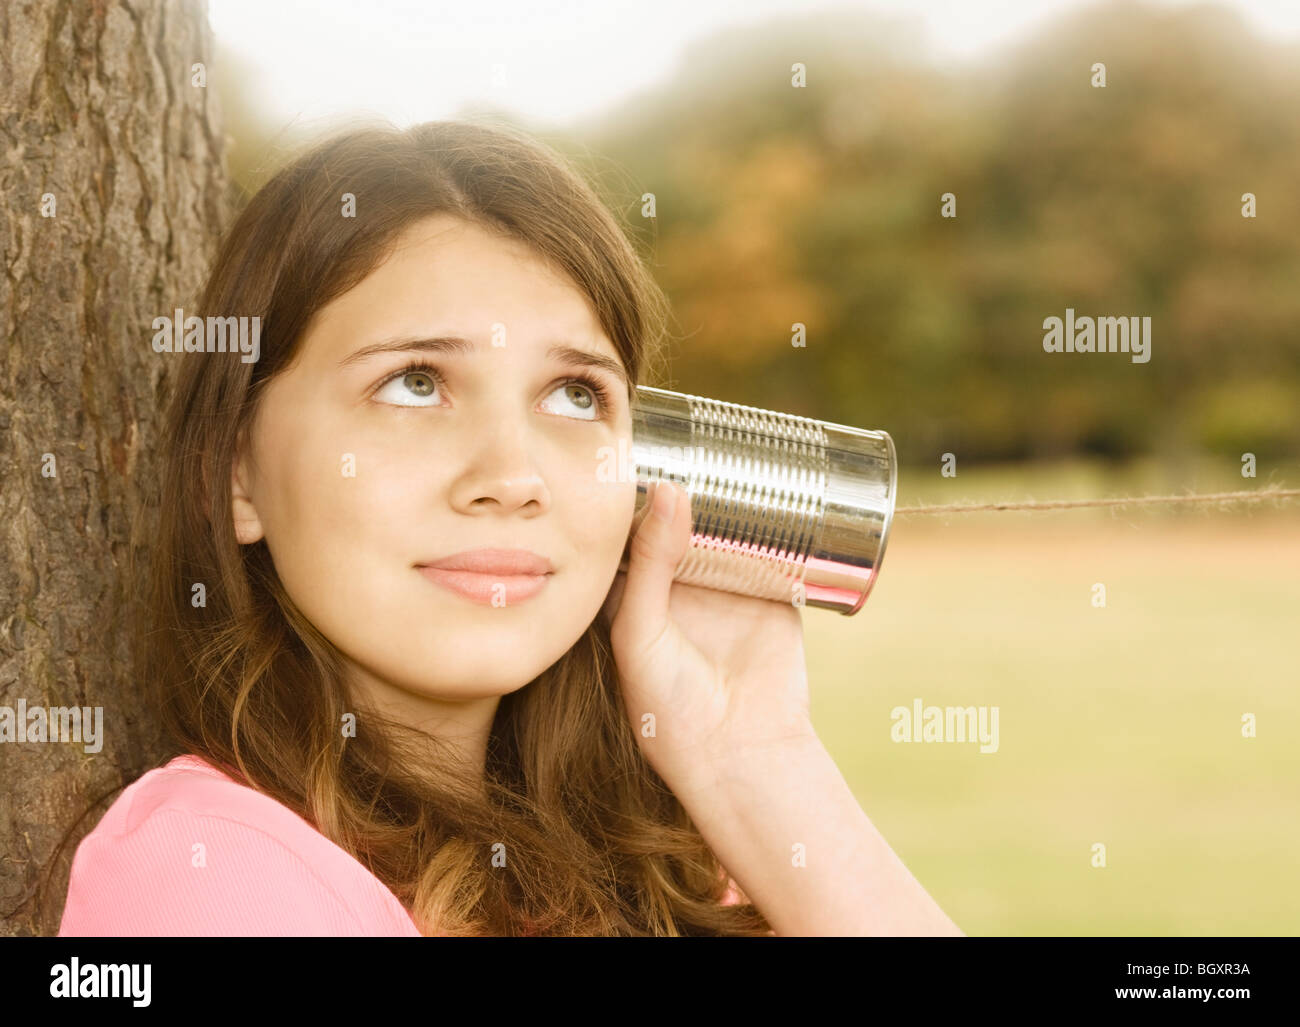 Girl Listening to Tin Can Phone - Stock Image